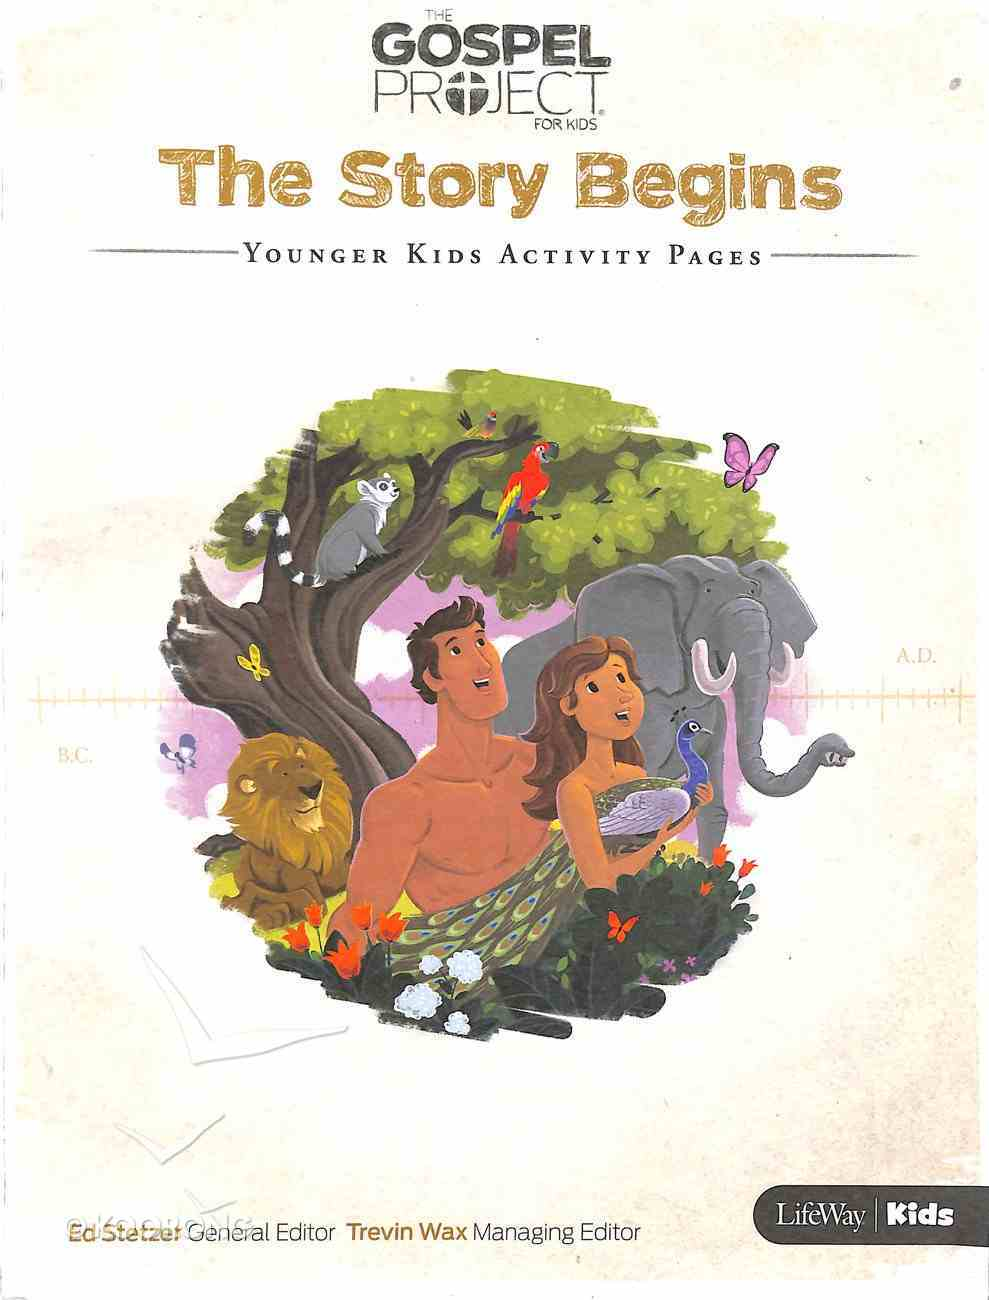 The Story Begins (Younger Kids Activity Pages) (#01 in The Gospel Project For Kids 2015-18 Series) Paperback